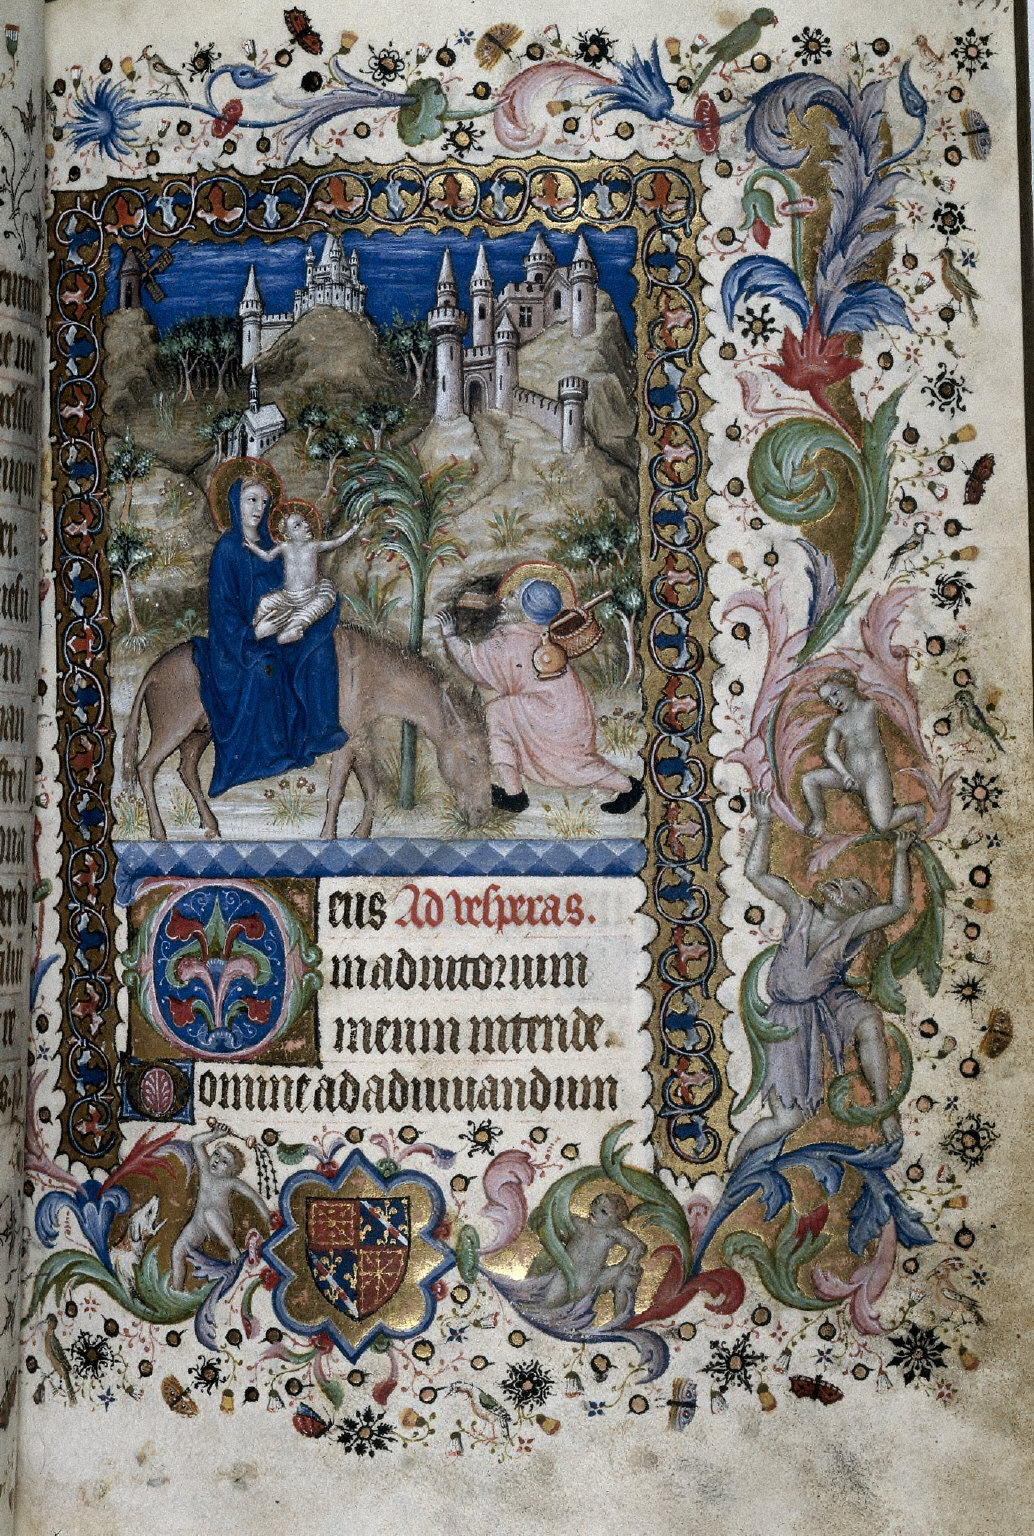 Hours of Charles the Noble, King of Navarre (1361-1425): Flight into Egypt (Vespers), fol. 88 (recto)